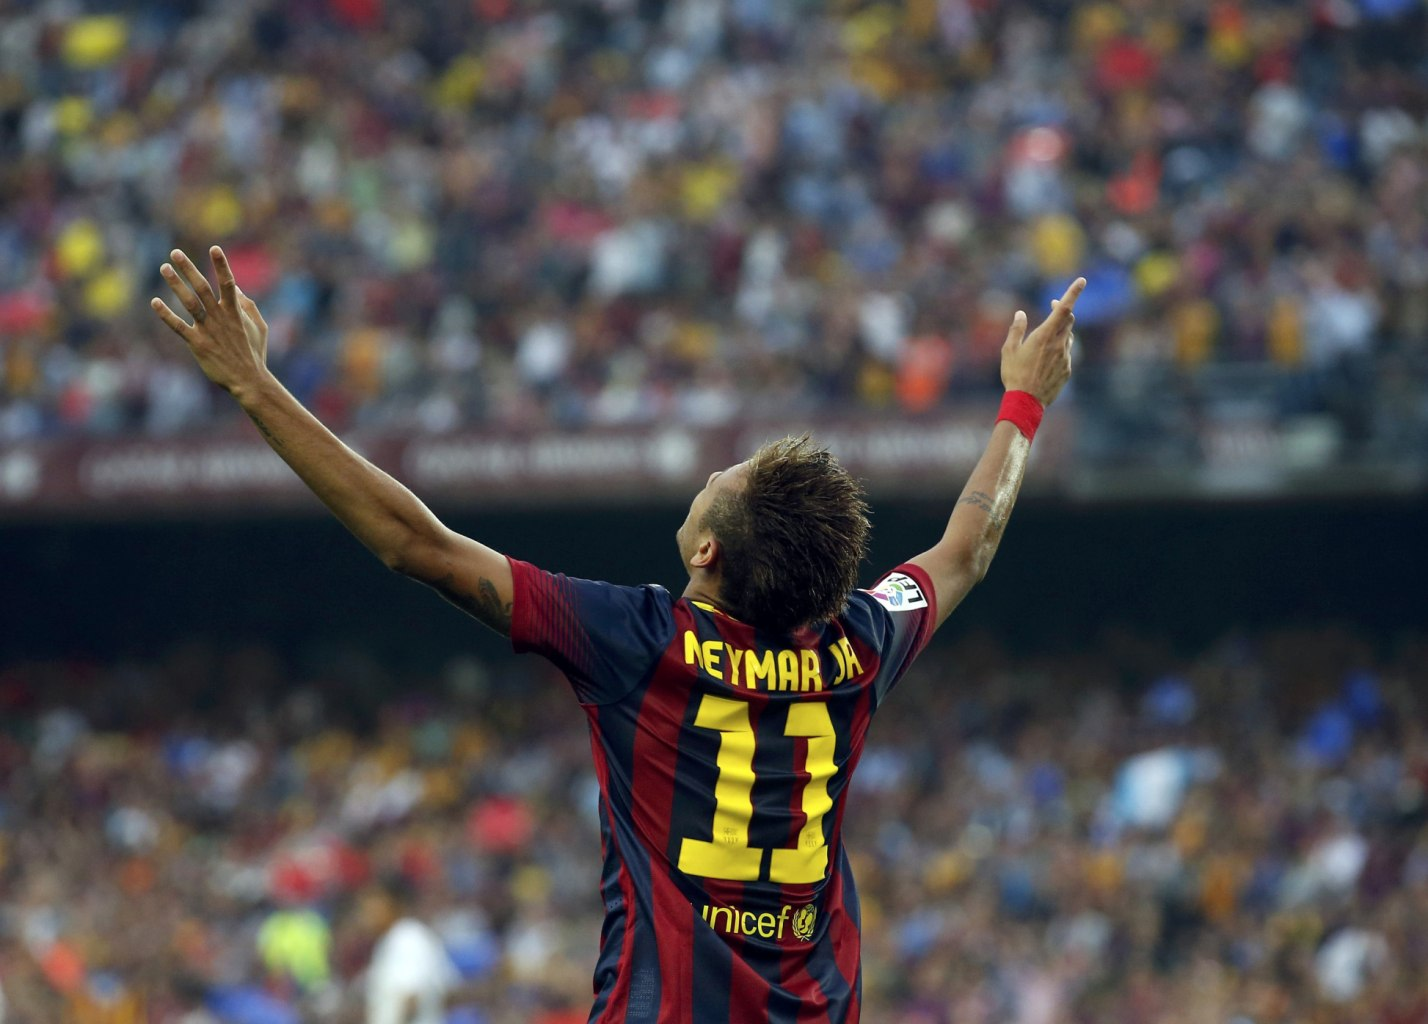 Neymar raising his two hands to the air, after scoring against Real Madrid